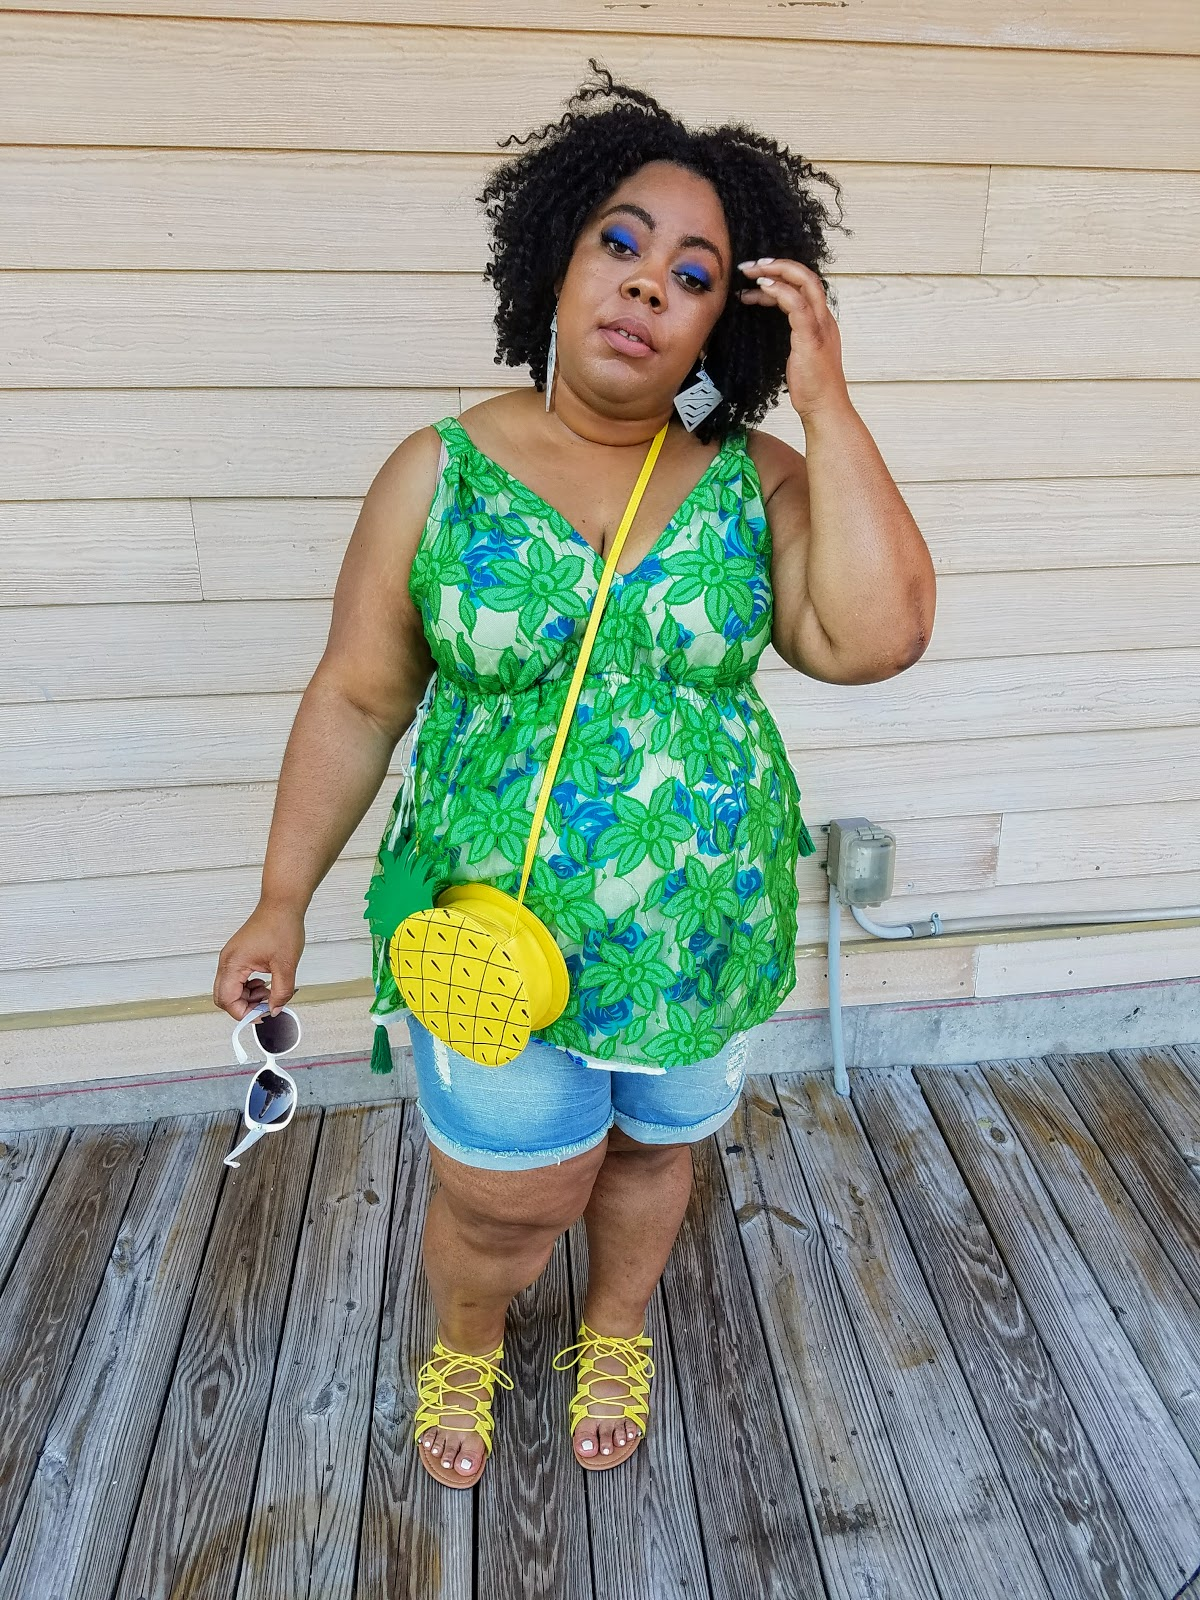 plus size, blogger, Lane Bryant tank, shorts, sandals, crossbody purse, natural hair, bold makeup, natural hair, fashion sunglasses, Myrtle Beach (Broadway at the Beach)